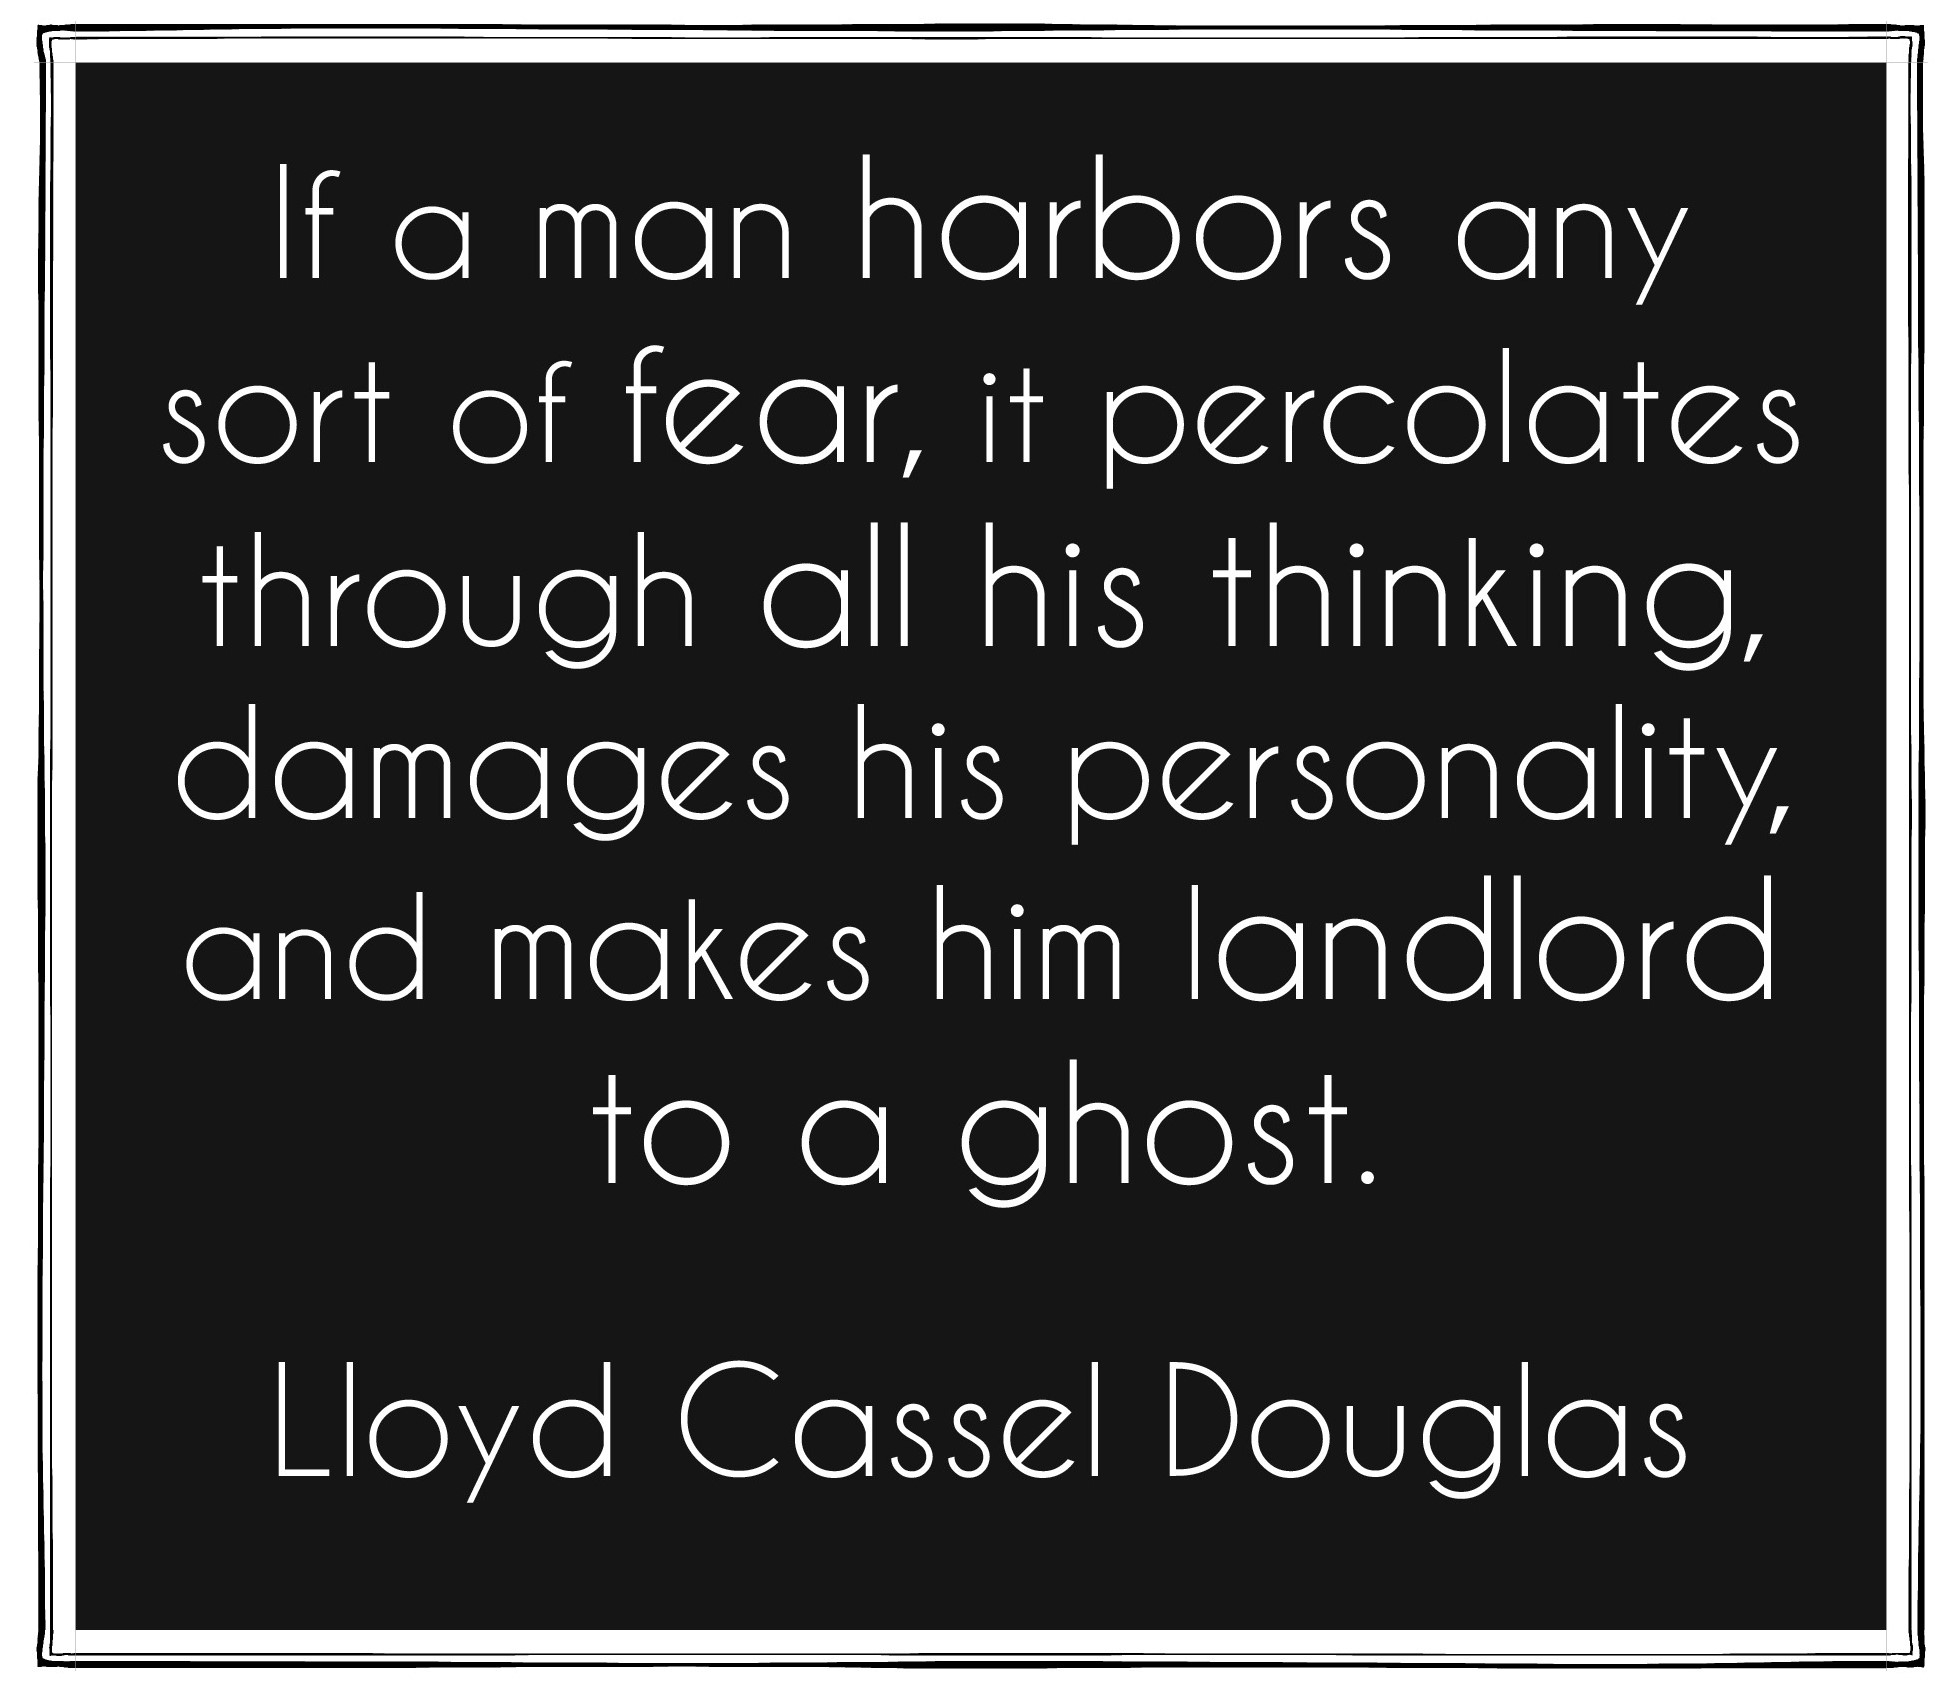 If a man harbors any sort of fear